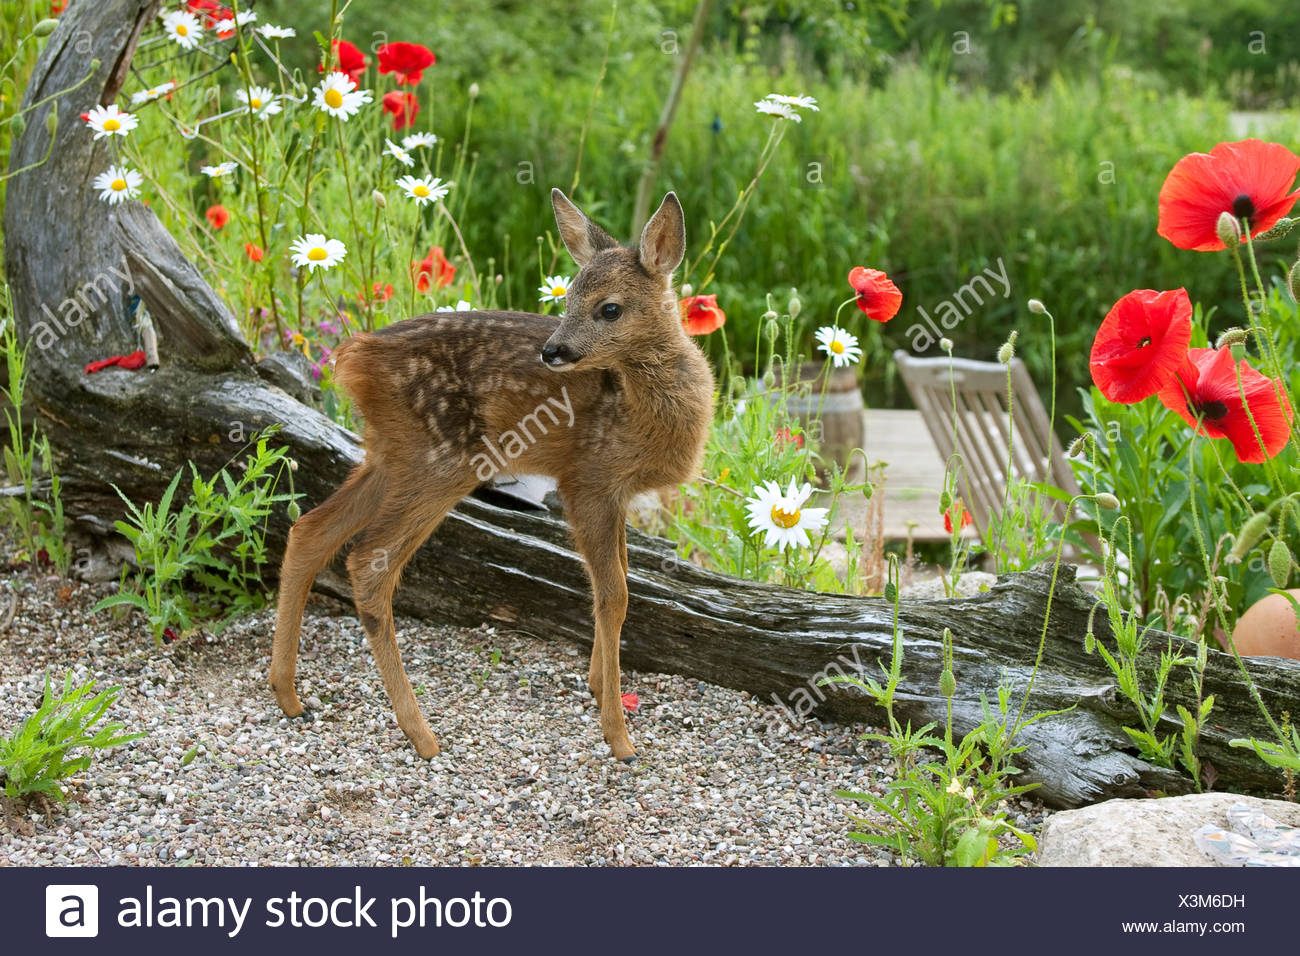 roe deer (Capreolus capreolus), fawn in the garden, Germany - Stock Image